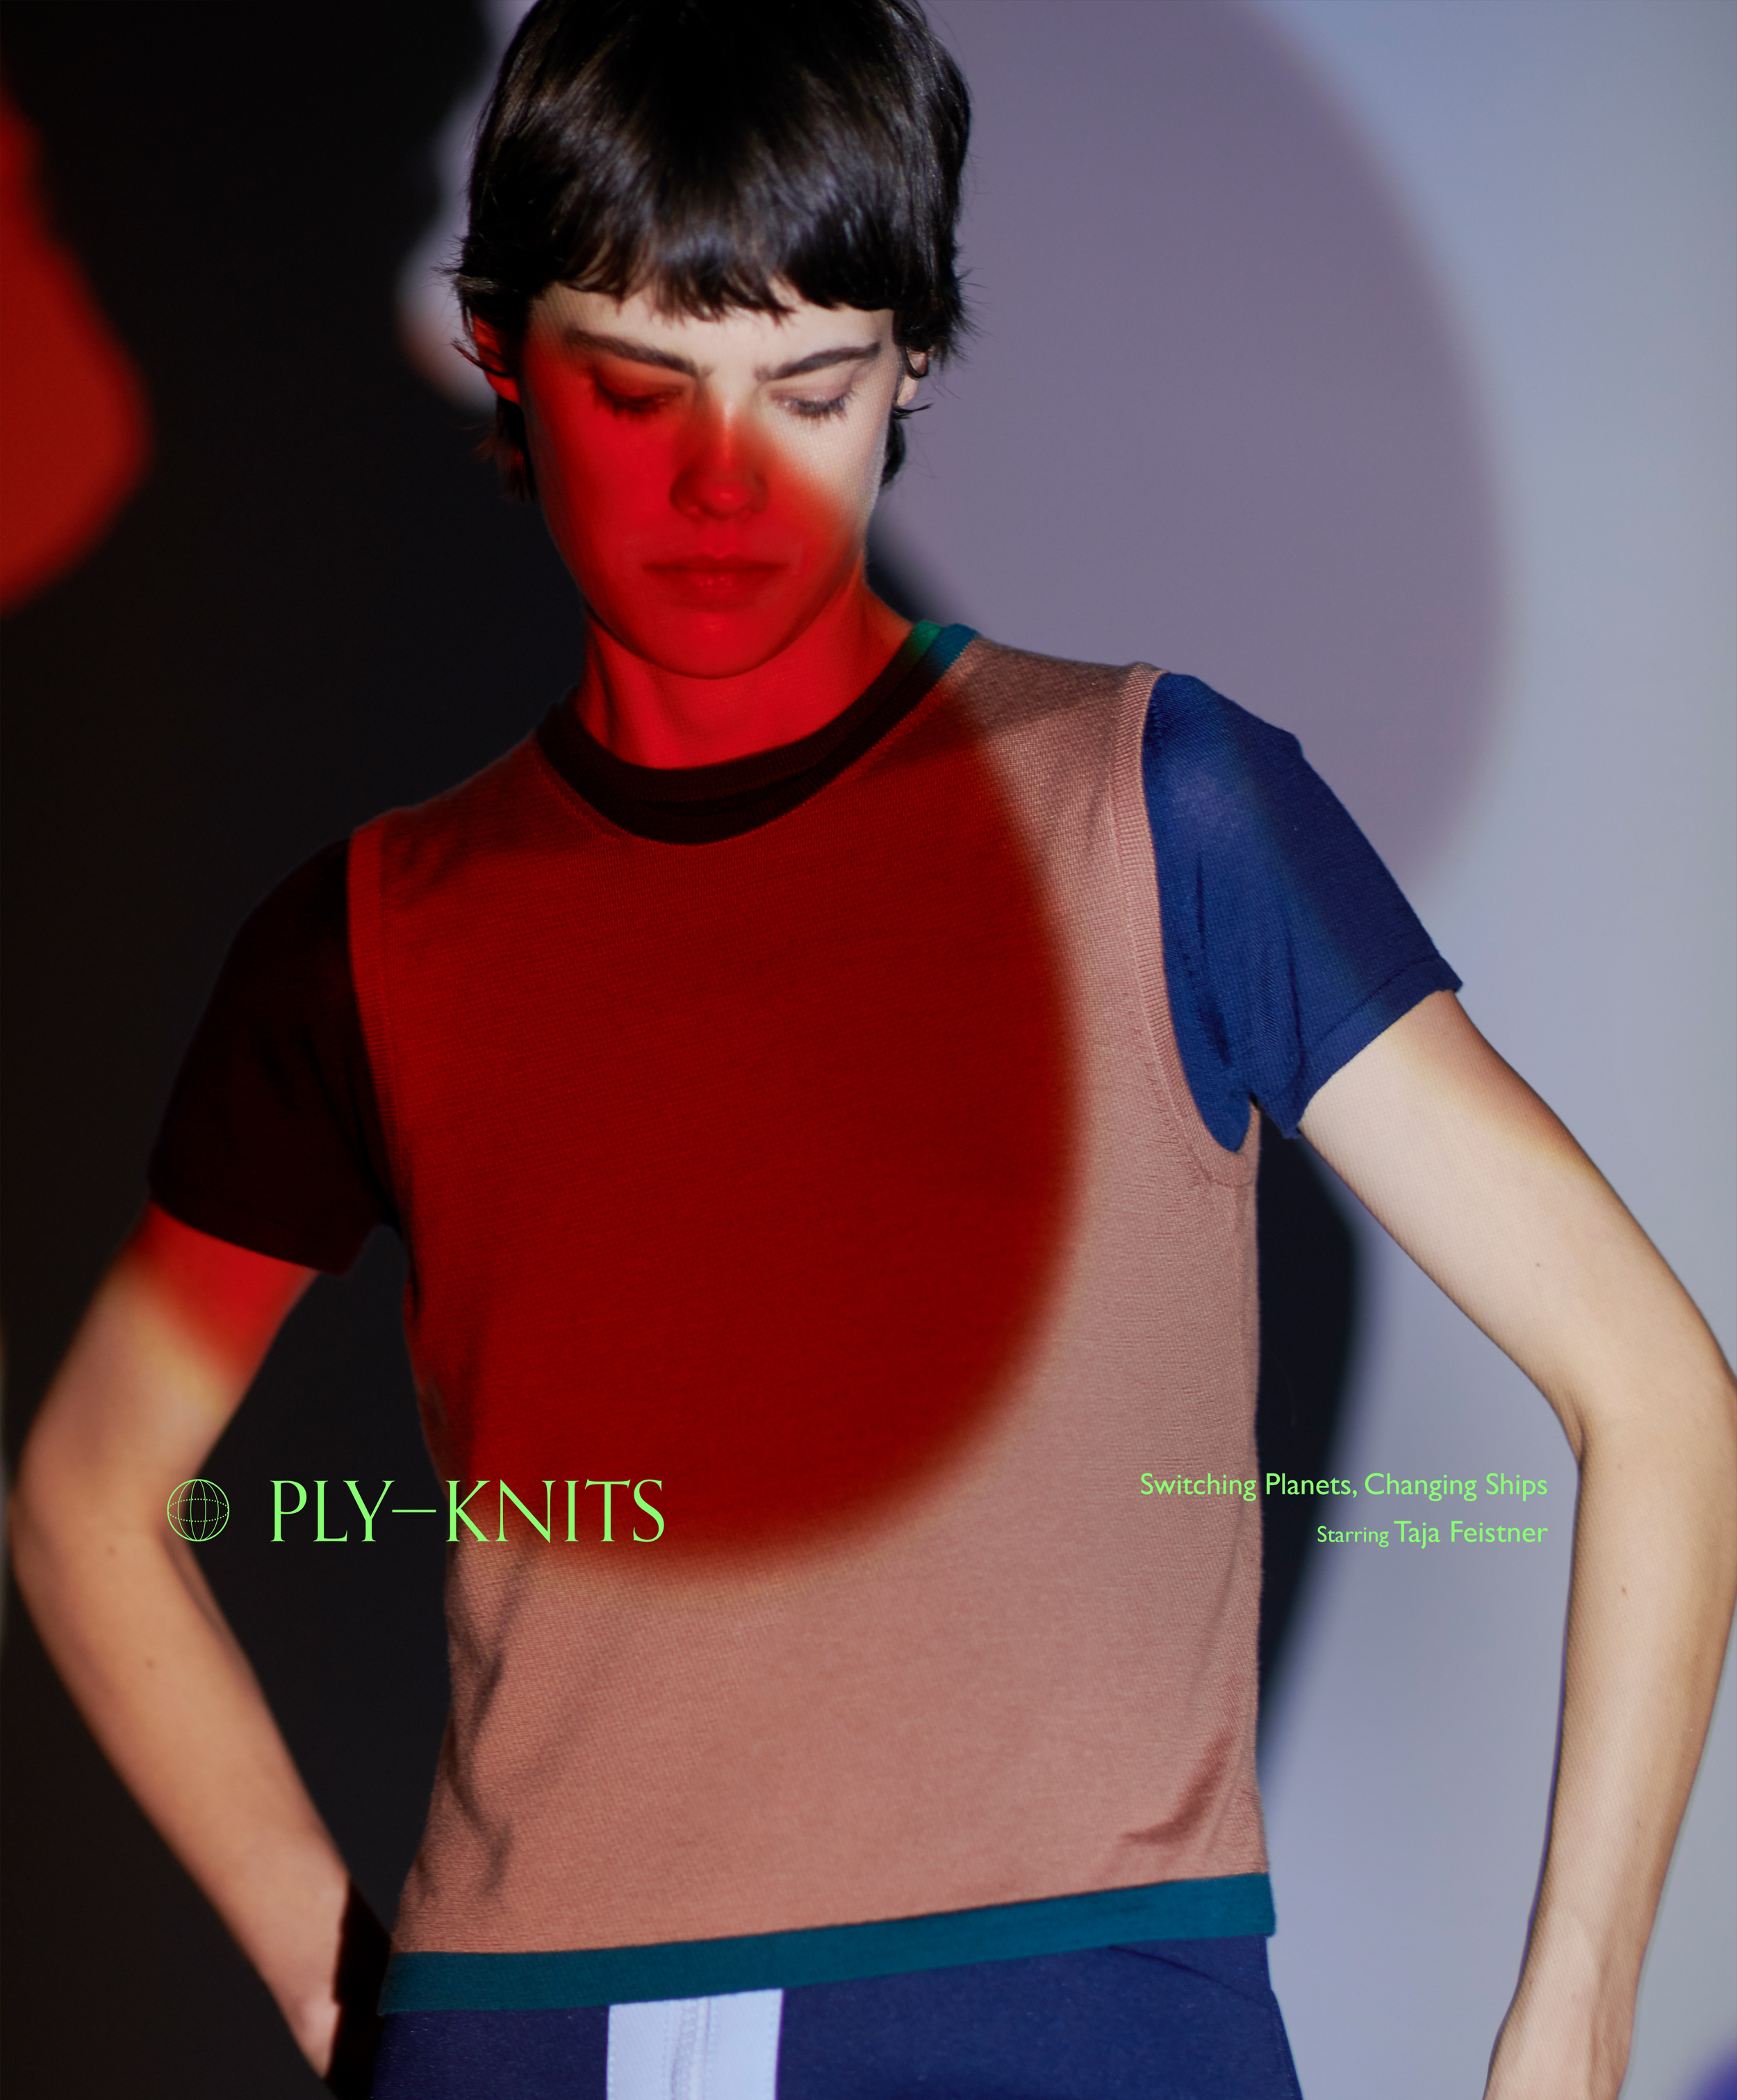 PlyKnits_Campaign_SS19_11.jpg